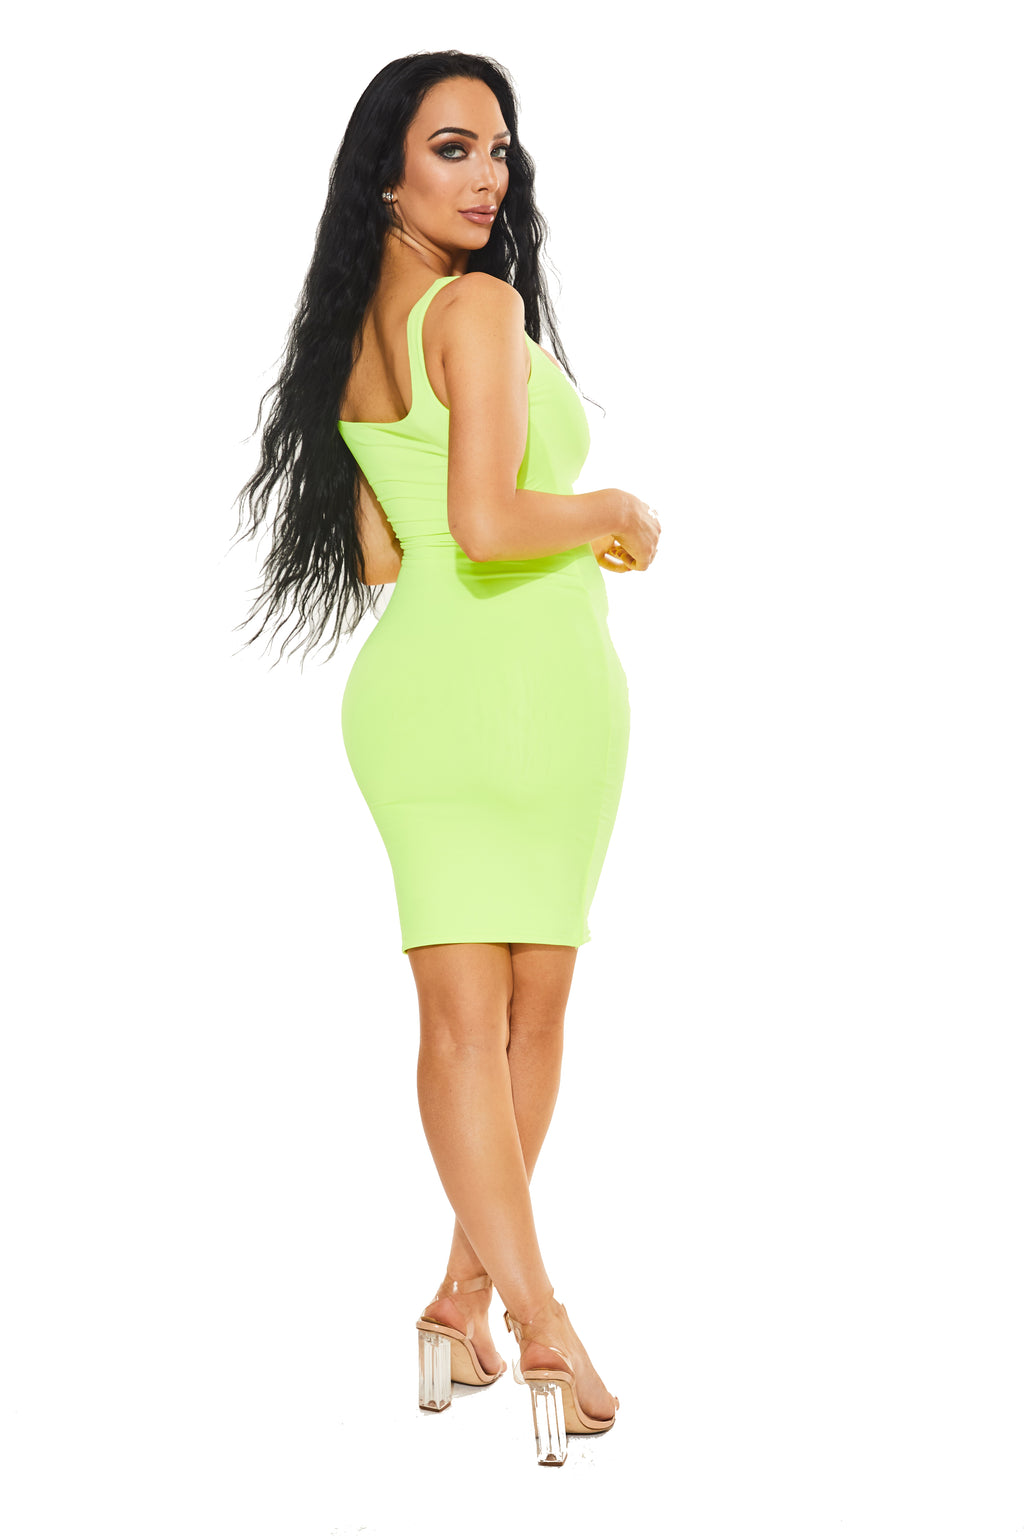 NOT SO BASIC, BASIC DRESS - Neon Lime - www.prettyboutique.com